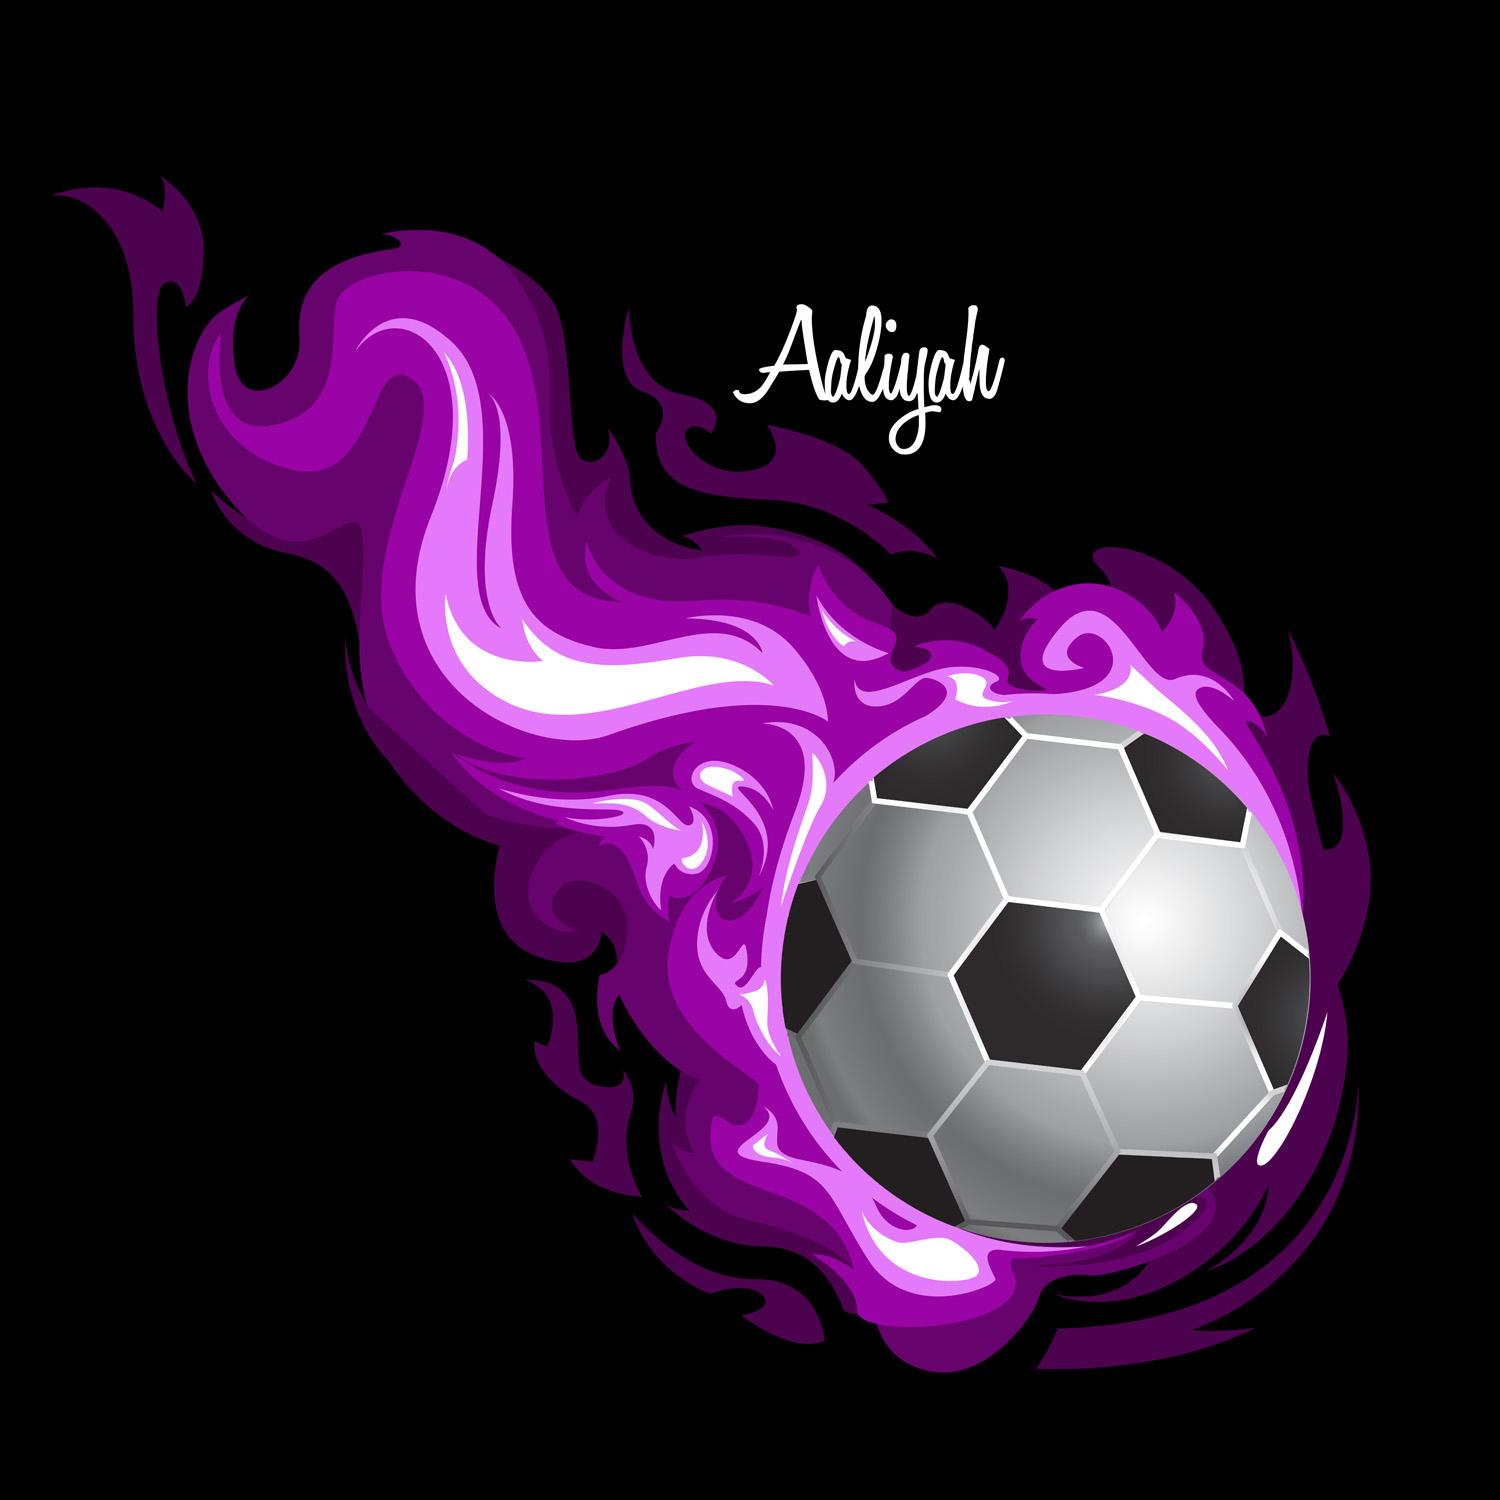 Girls Sport Soccer Duvet Cover with Purple Flames 142